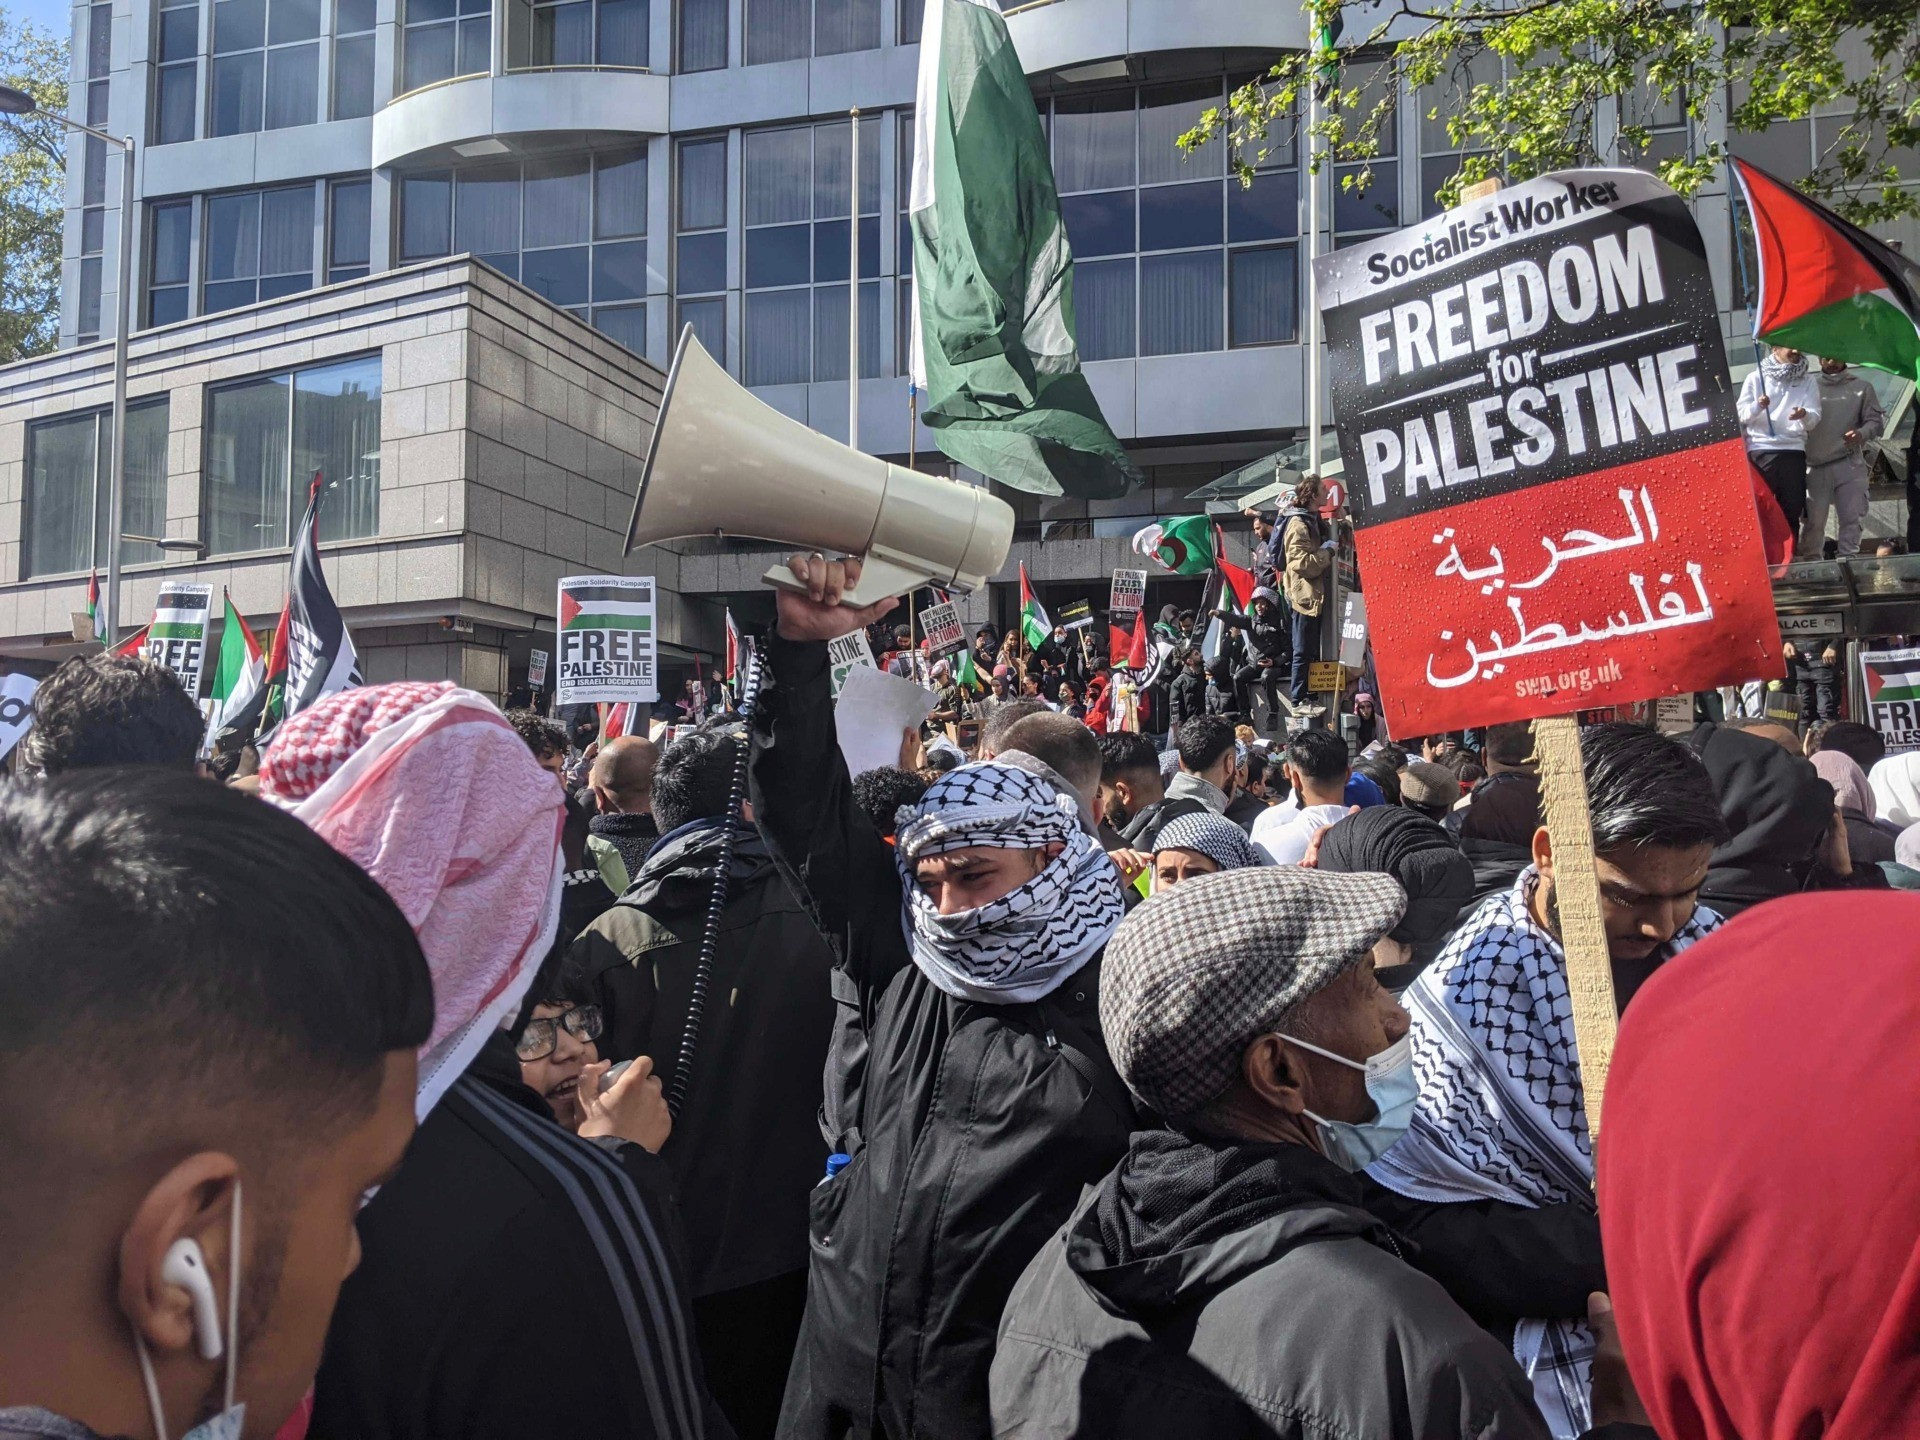 """A protester is seen carrying a Socialist Worker placard reading """"Freedom for Palestine"""", at an anti-Israel protest in London. May 15th, 2021. Kurt Zindulka, Breitbart News"""